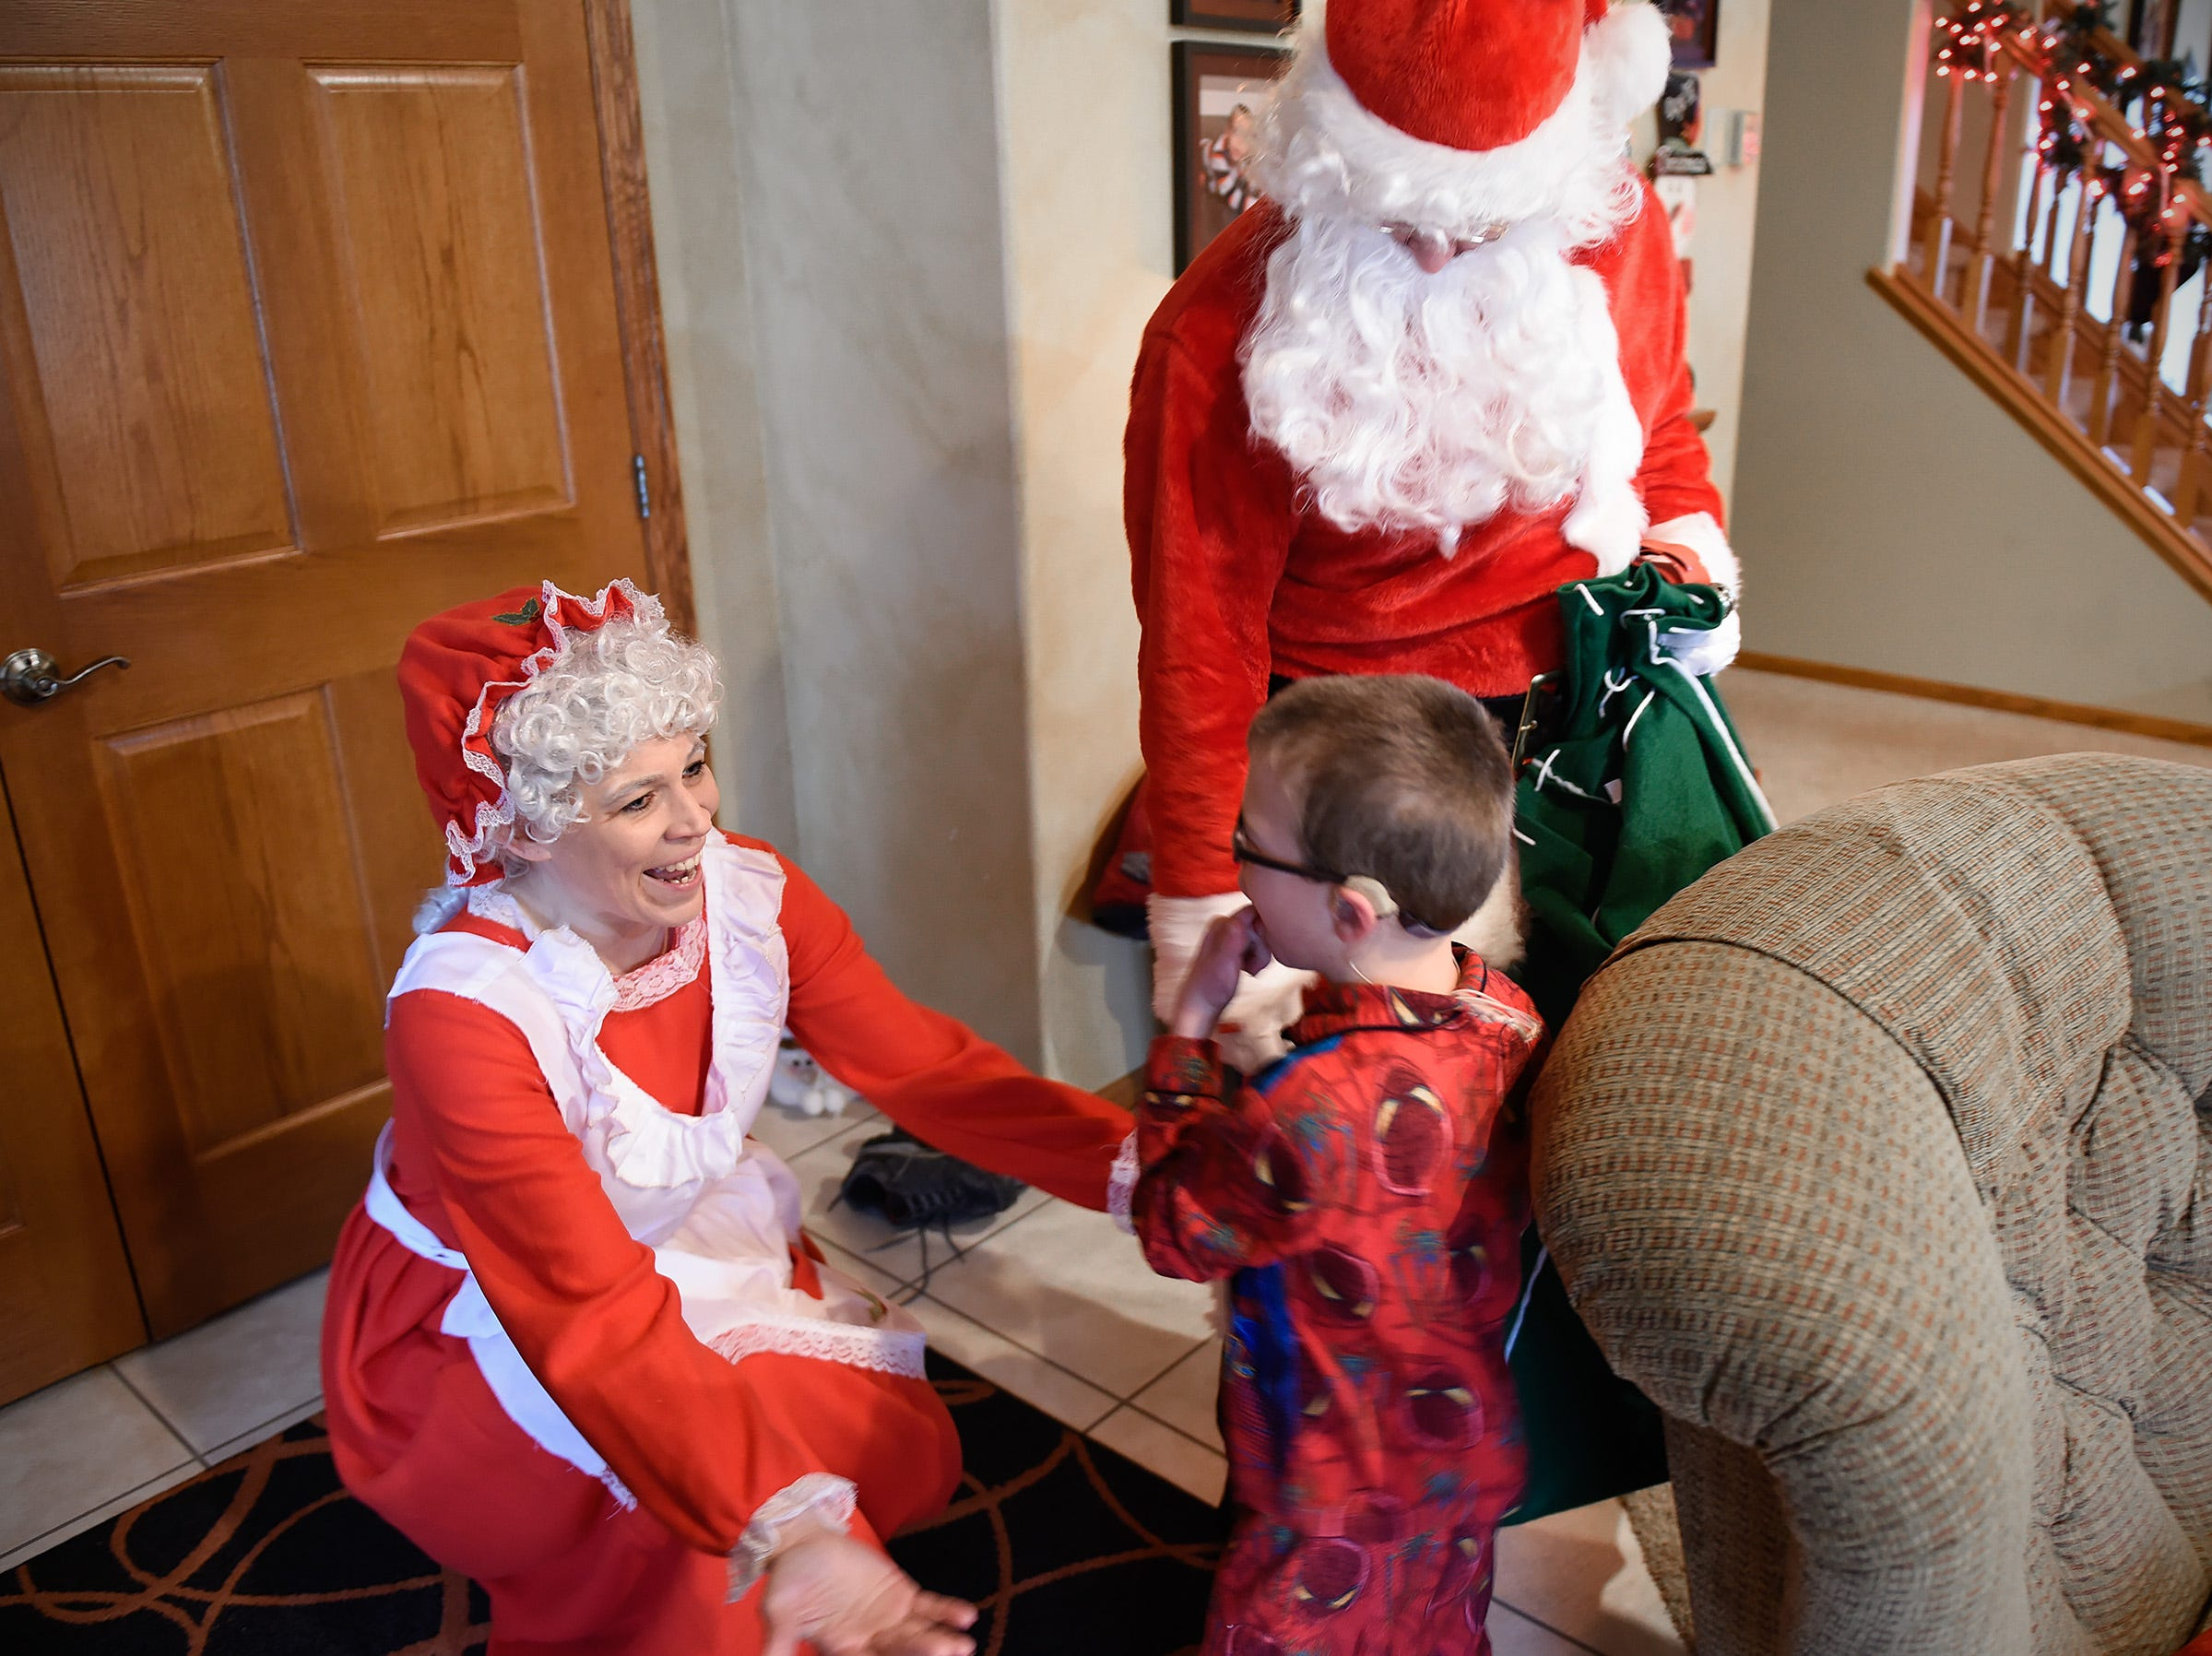 Camran Schneider, 6, gives Mrs. Claus a hug Tuesday, Dec. 25, at his home in Kimball.